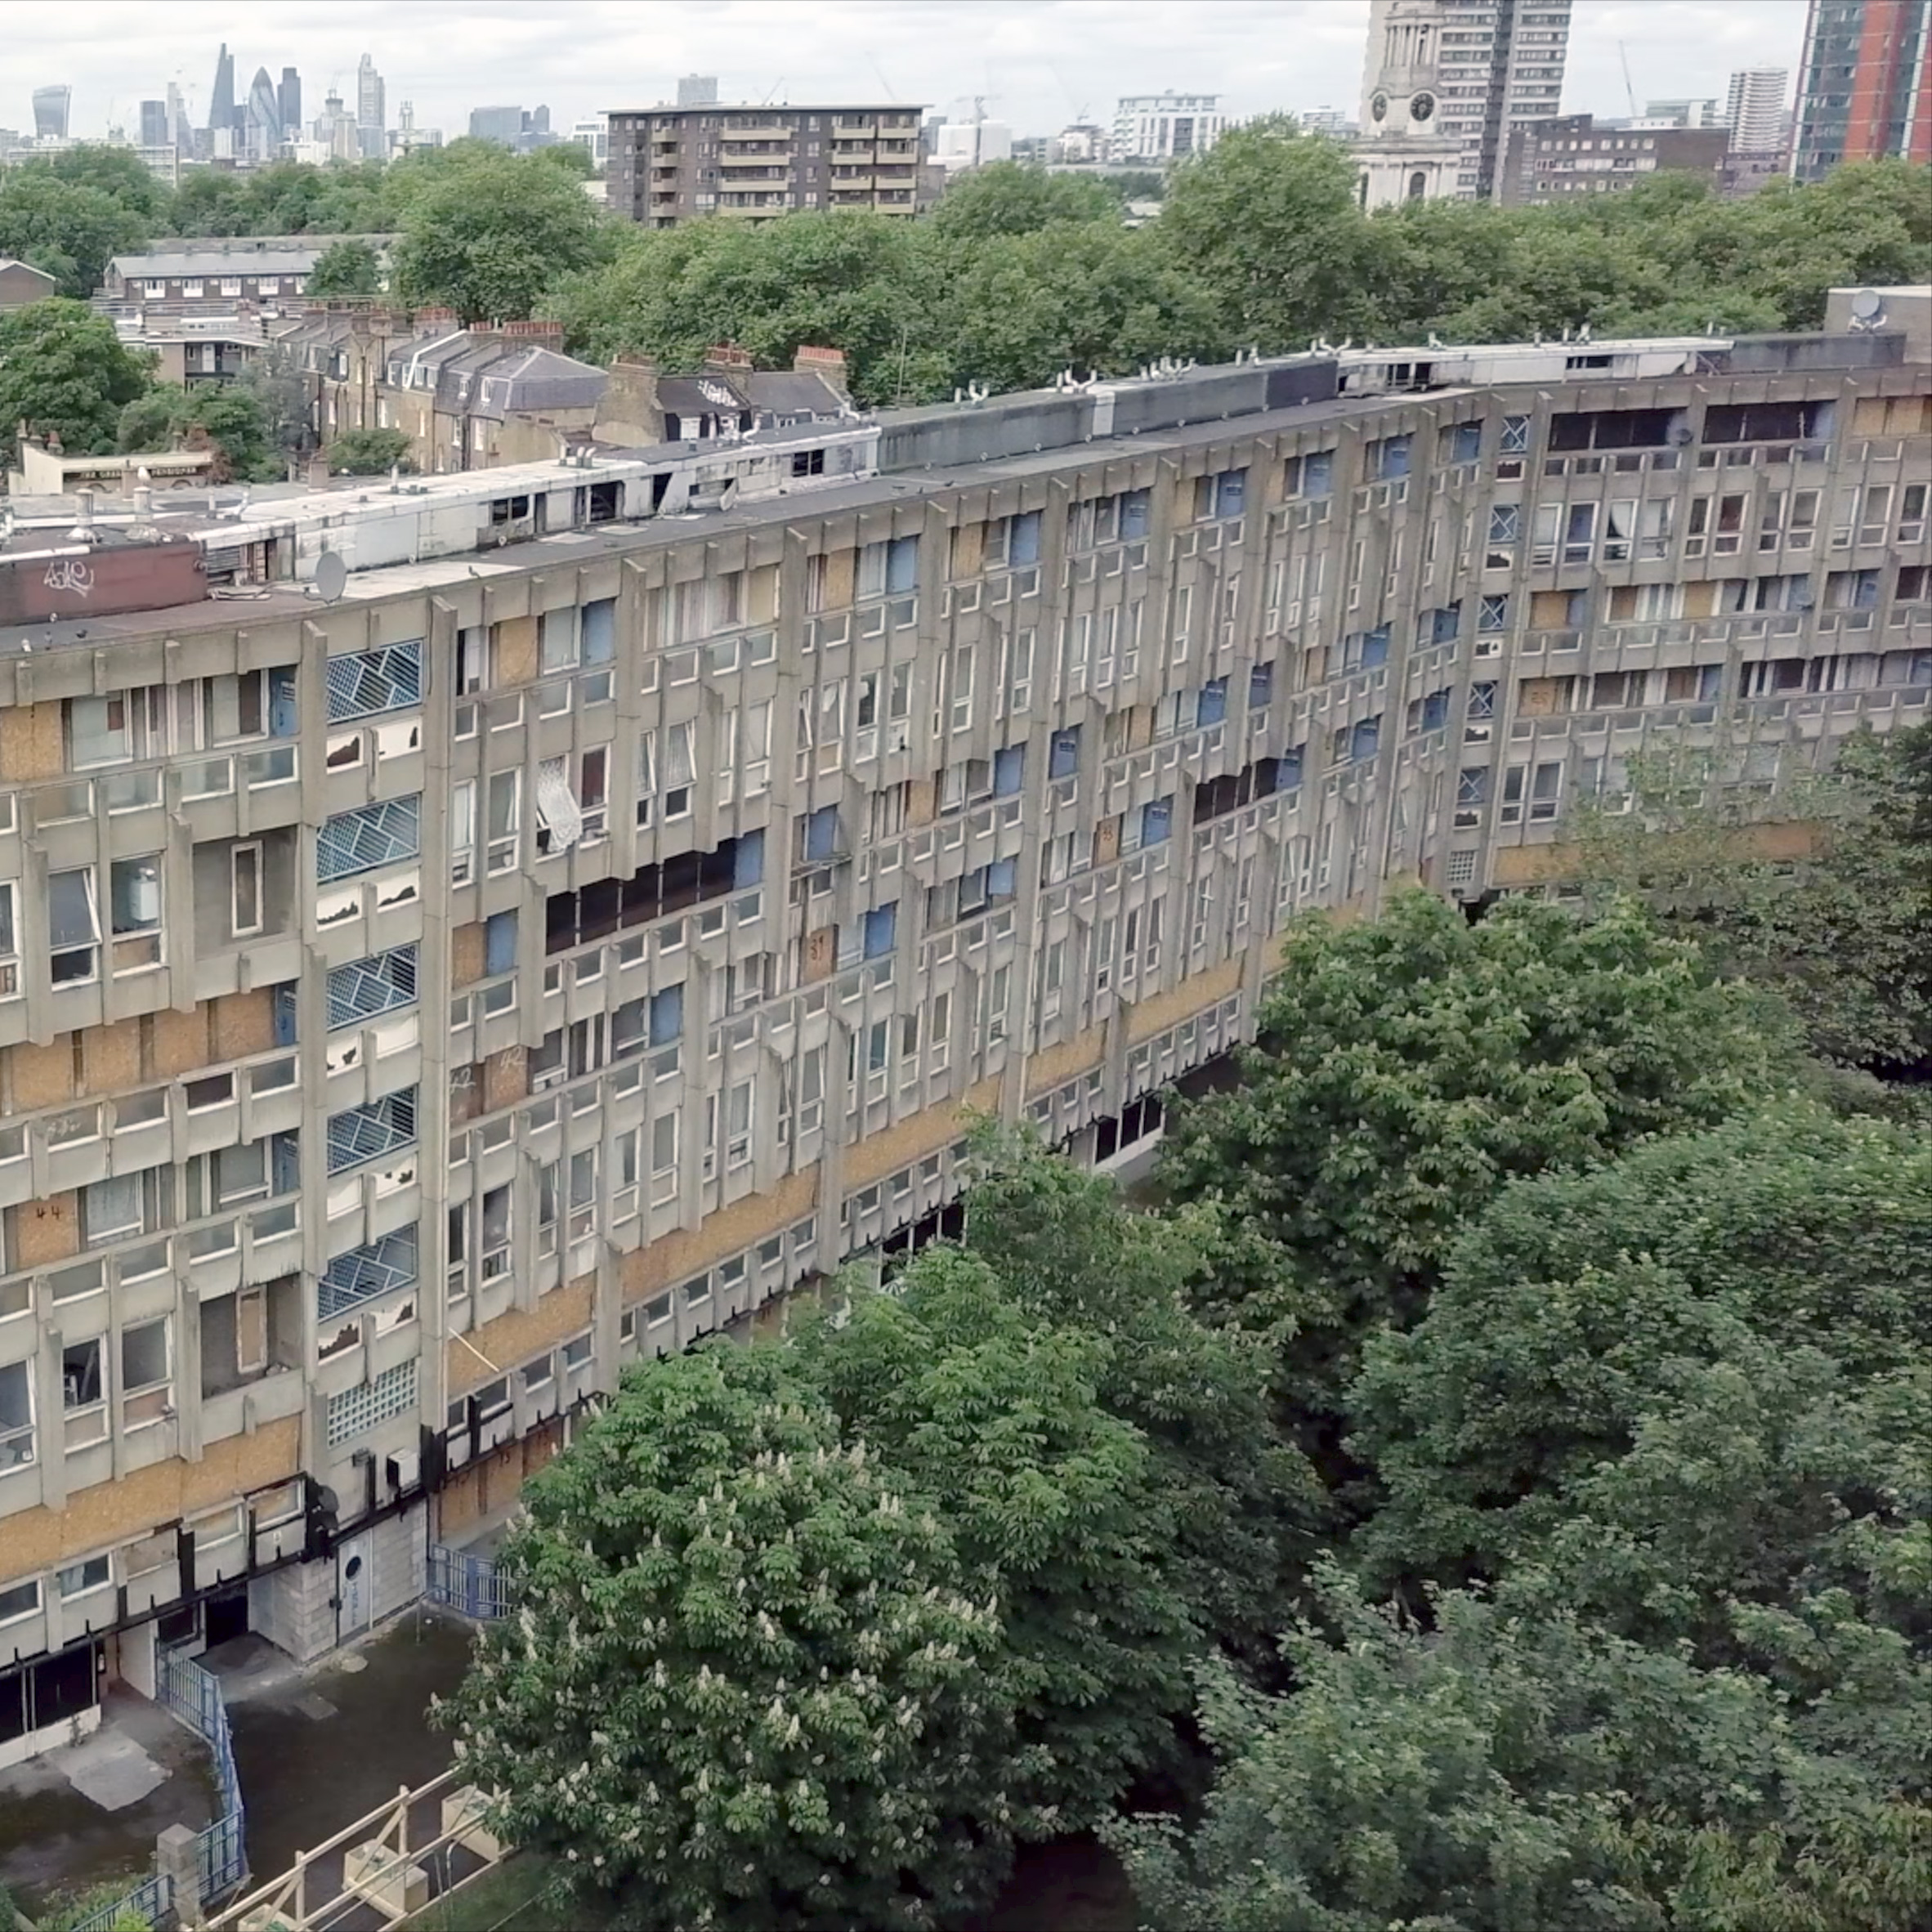 Hotel Auto Hogar Barcelona Opiniones Drone Footage Shows Robin Hood Gardens Ahead Of Imminent Demolition